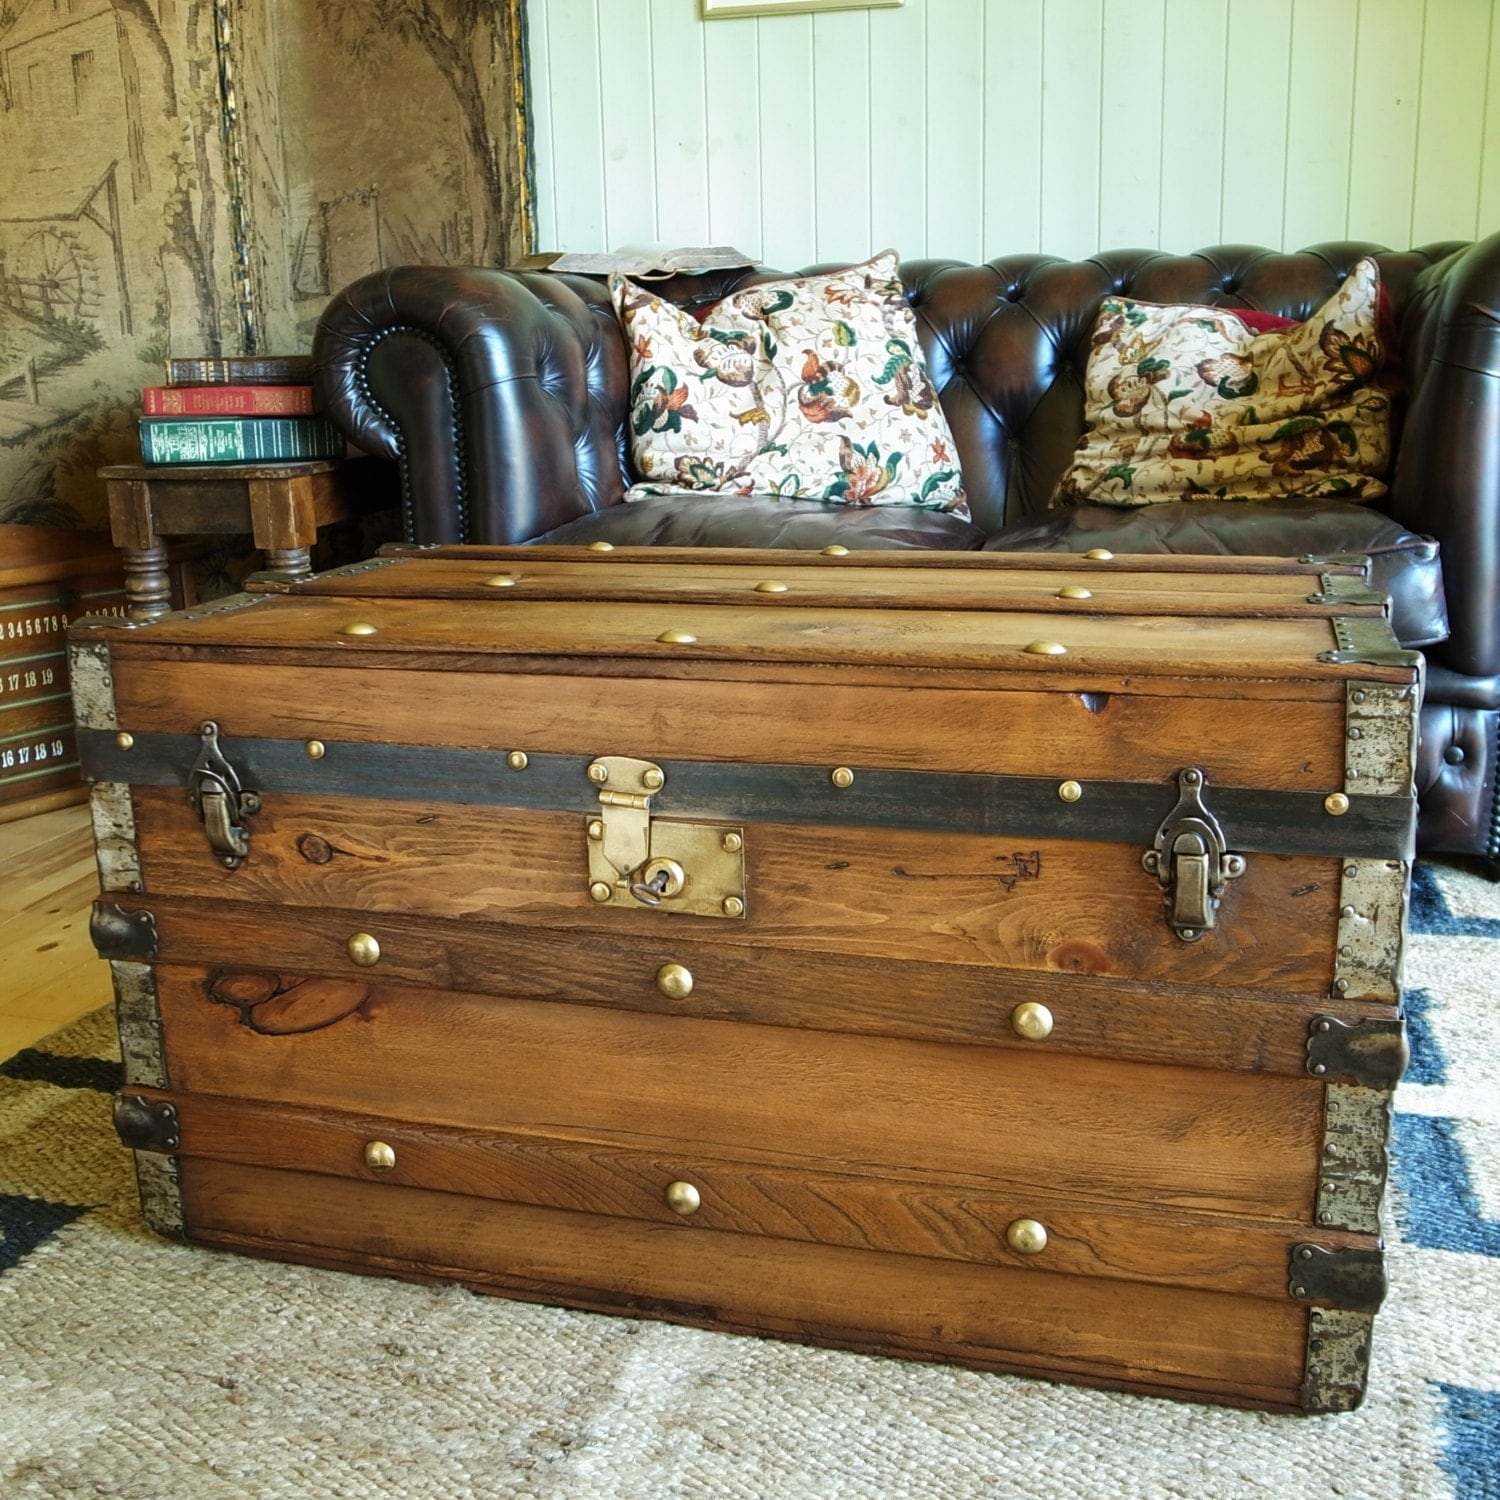 Vintage Steamer Trunk Coffee Table Pine Chest Antique